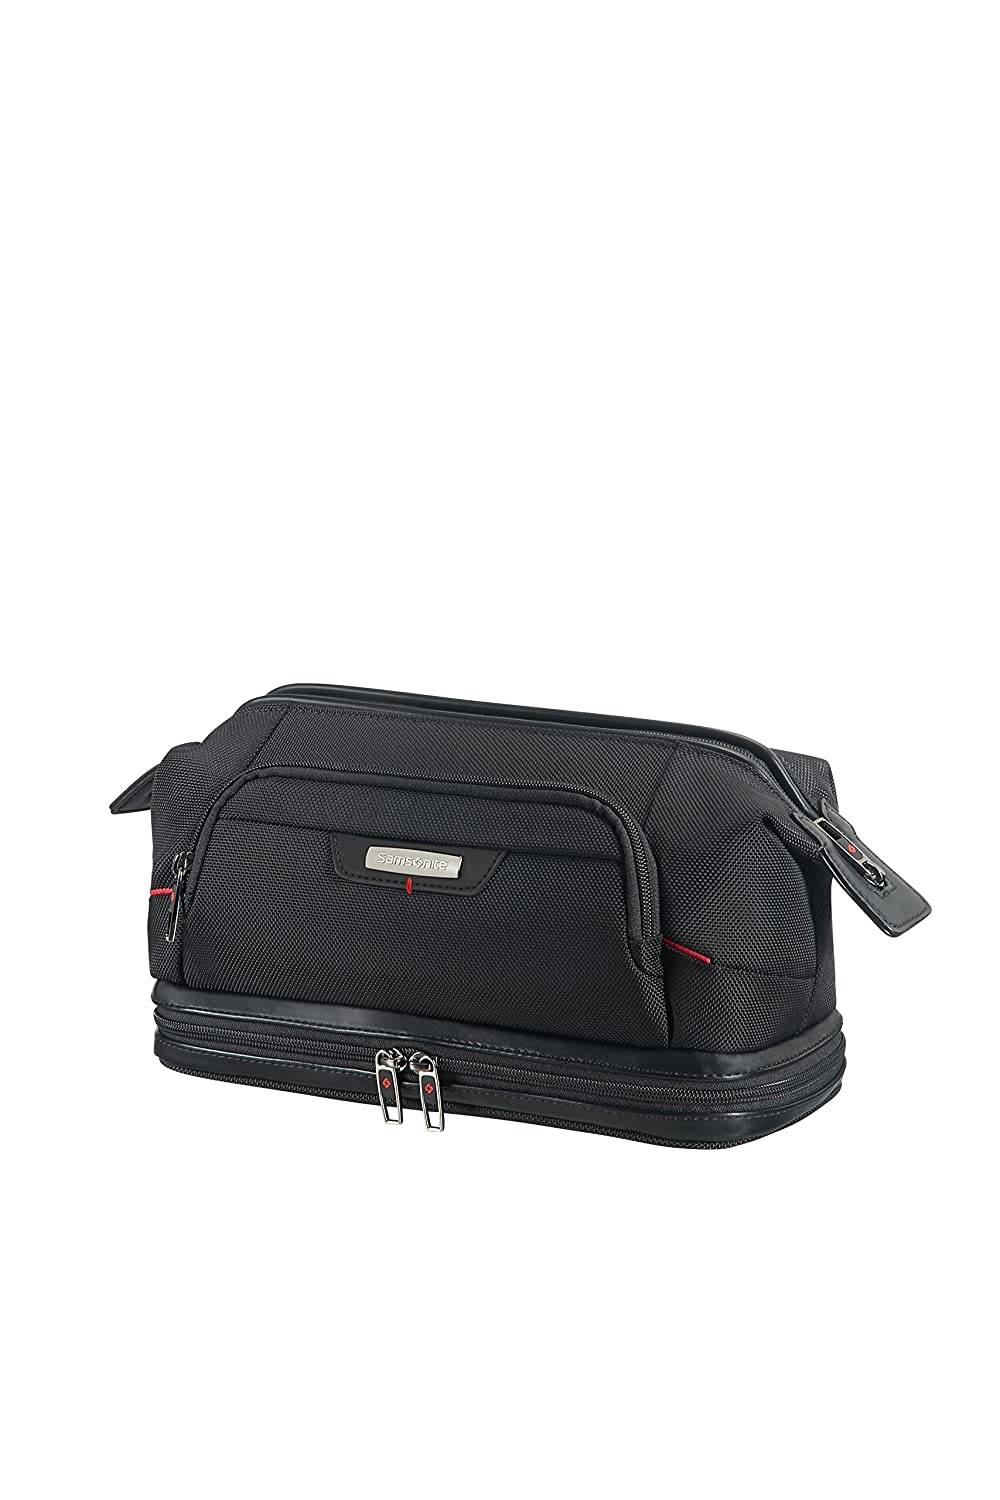 SAMSONITE Pro-DLX 4 Cosmetic Cases - Hanging Toilet Kit Toiletry Bag ... 51481a70521b2